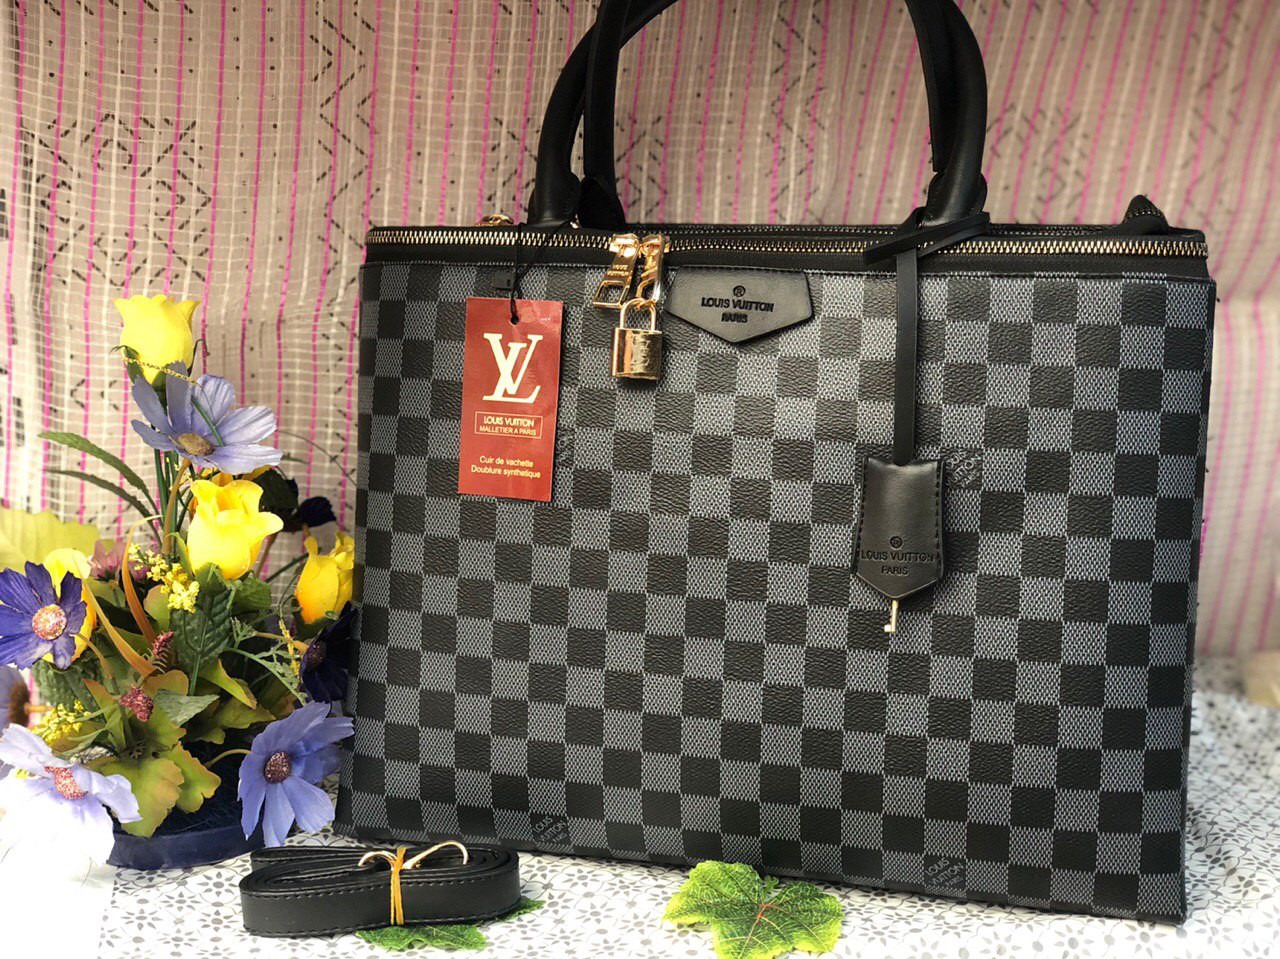 Сумка Louis Vuitton LV (реплика луи виттон) black